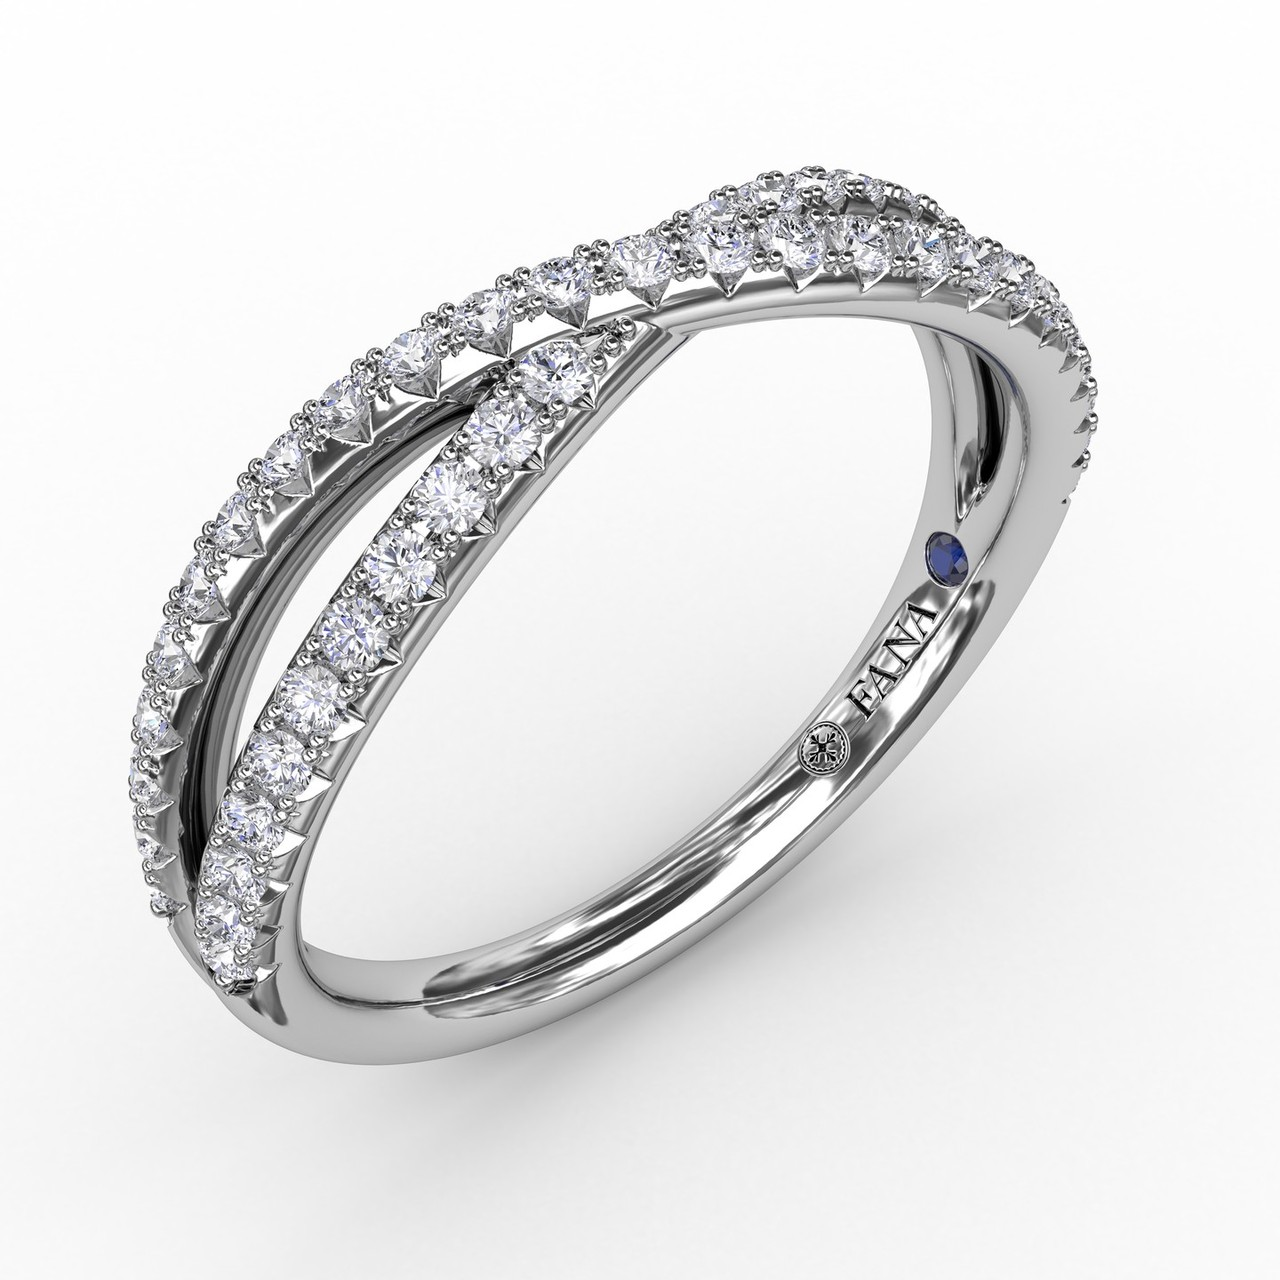 French Pave Crossover Diamond Band - A symbolic reflection of your love, our crossover diamond band is a duo of sparkling diamond ribbons intertwined with the promise of forever.   Perfect for stacking, this band is available in Platinum, 18KT & 14KT gold and can be customized through an Authorized Fana Retailer.